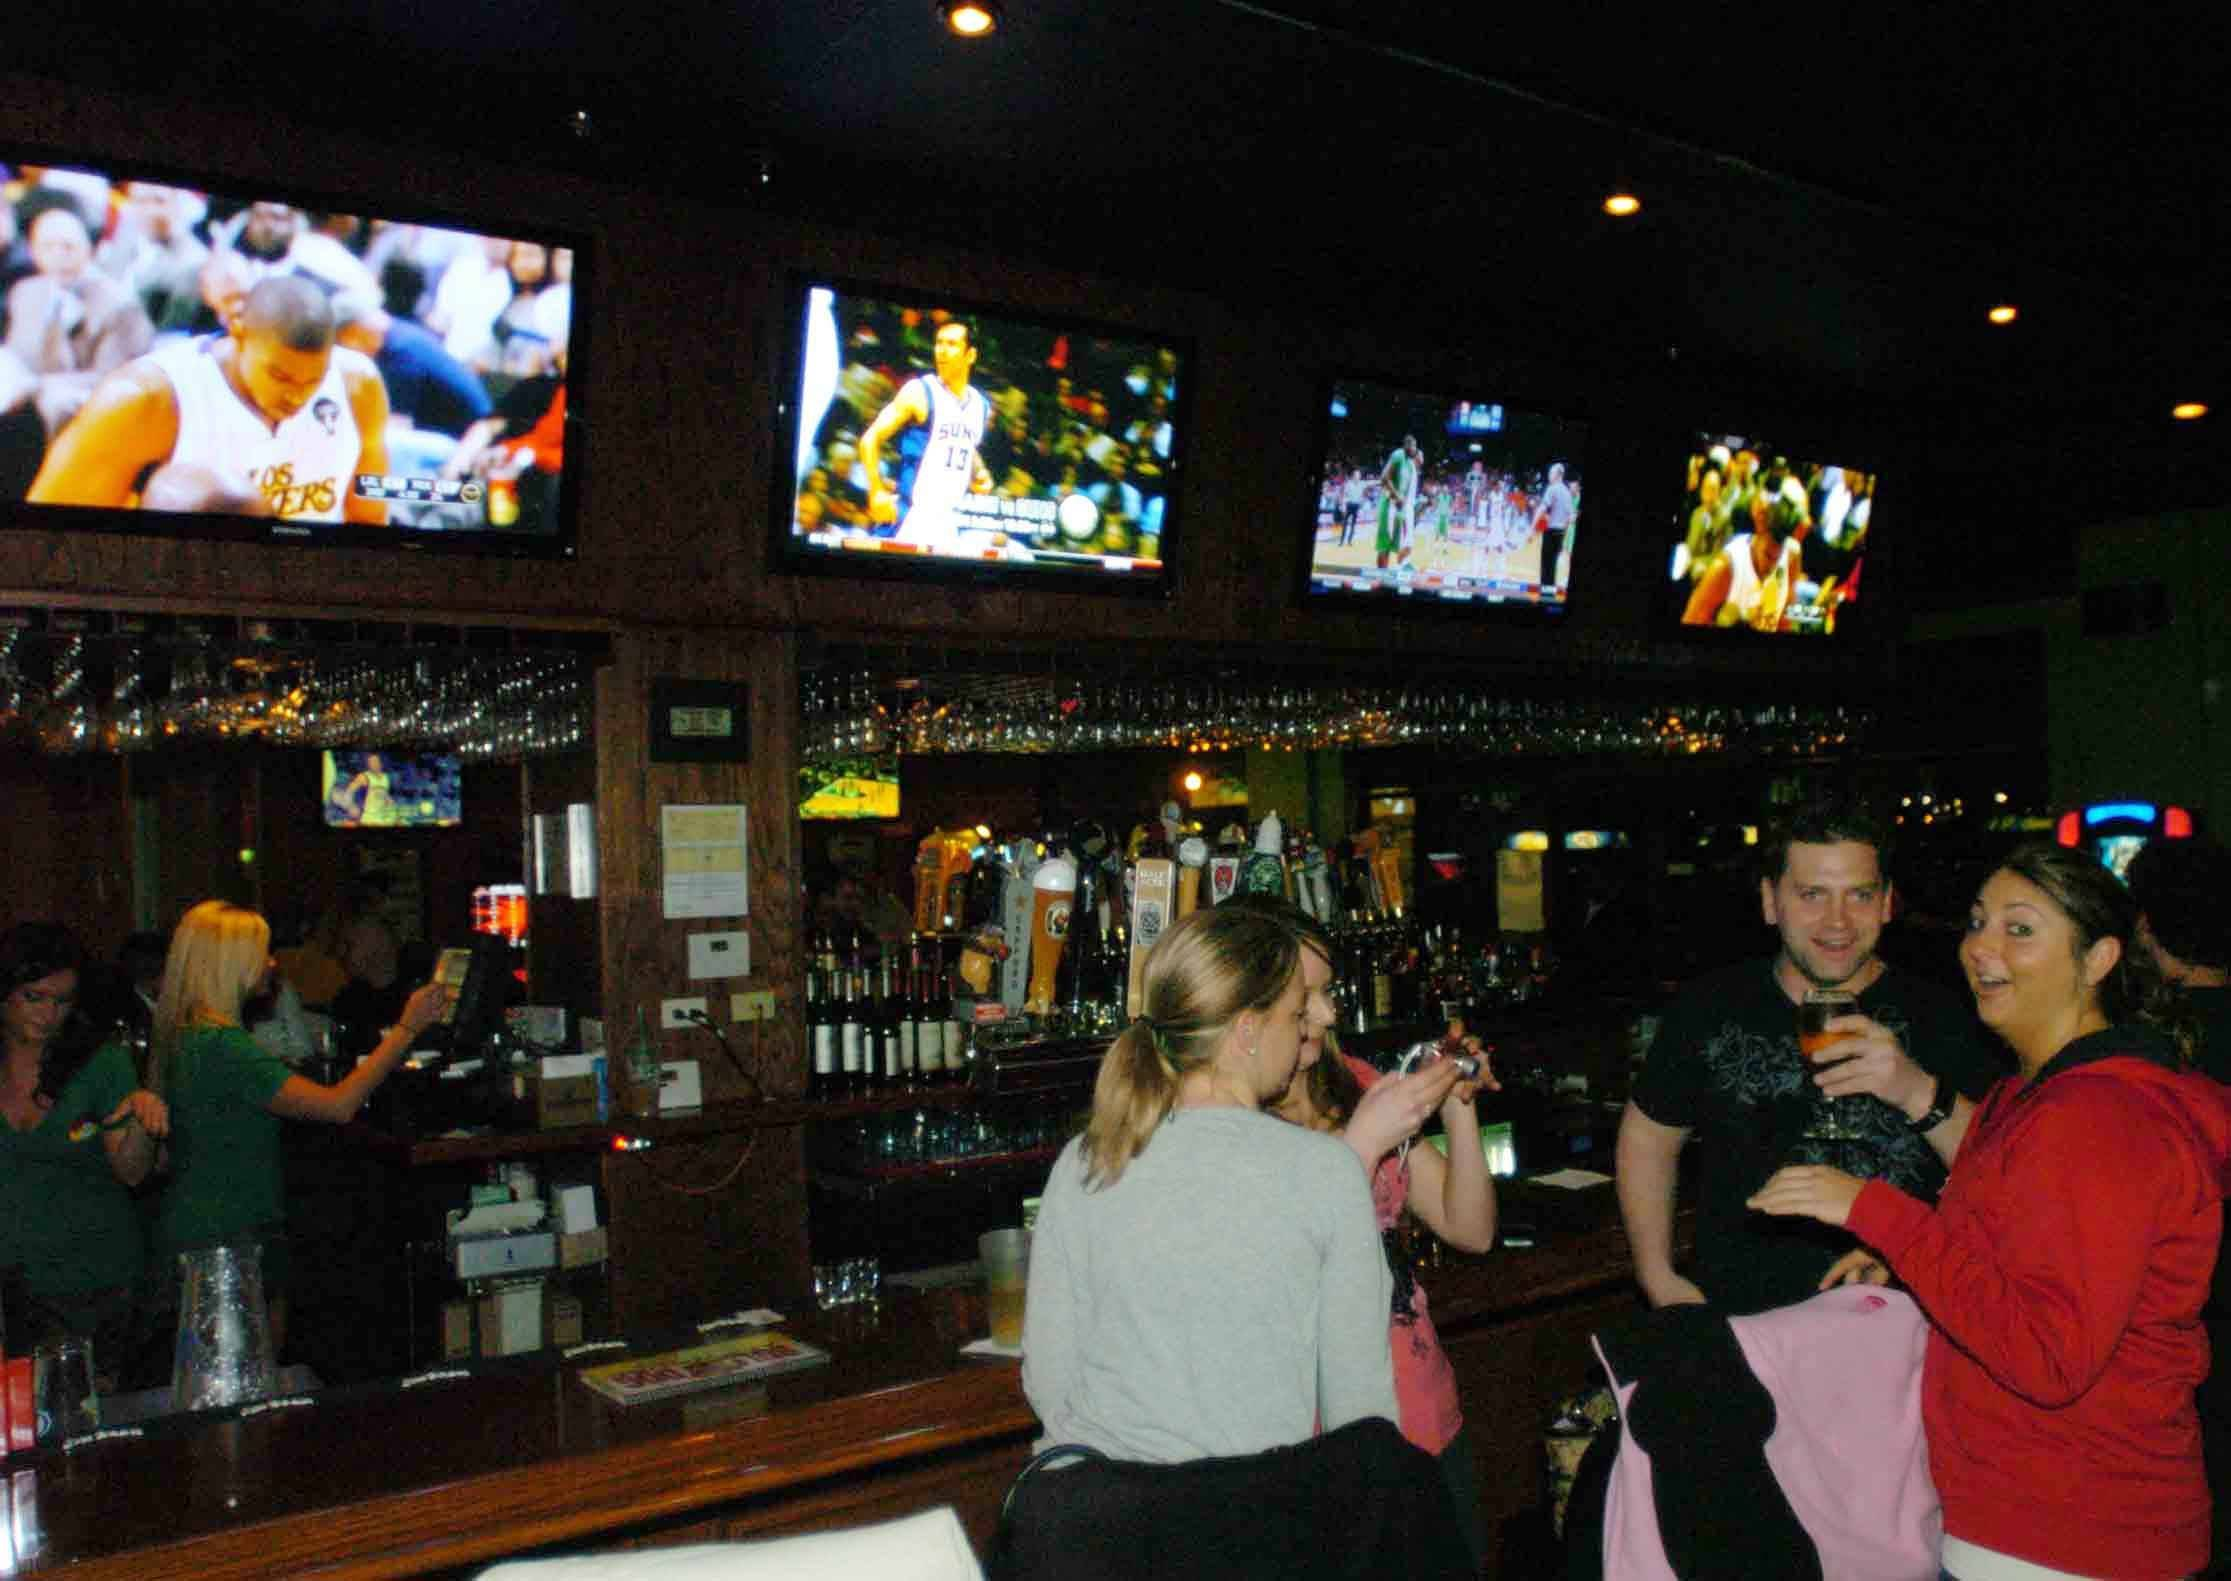 Fans Can Watch An Assortment Of Sporting Events At Bulldog Ale House In  Carol Stream.